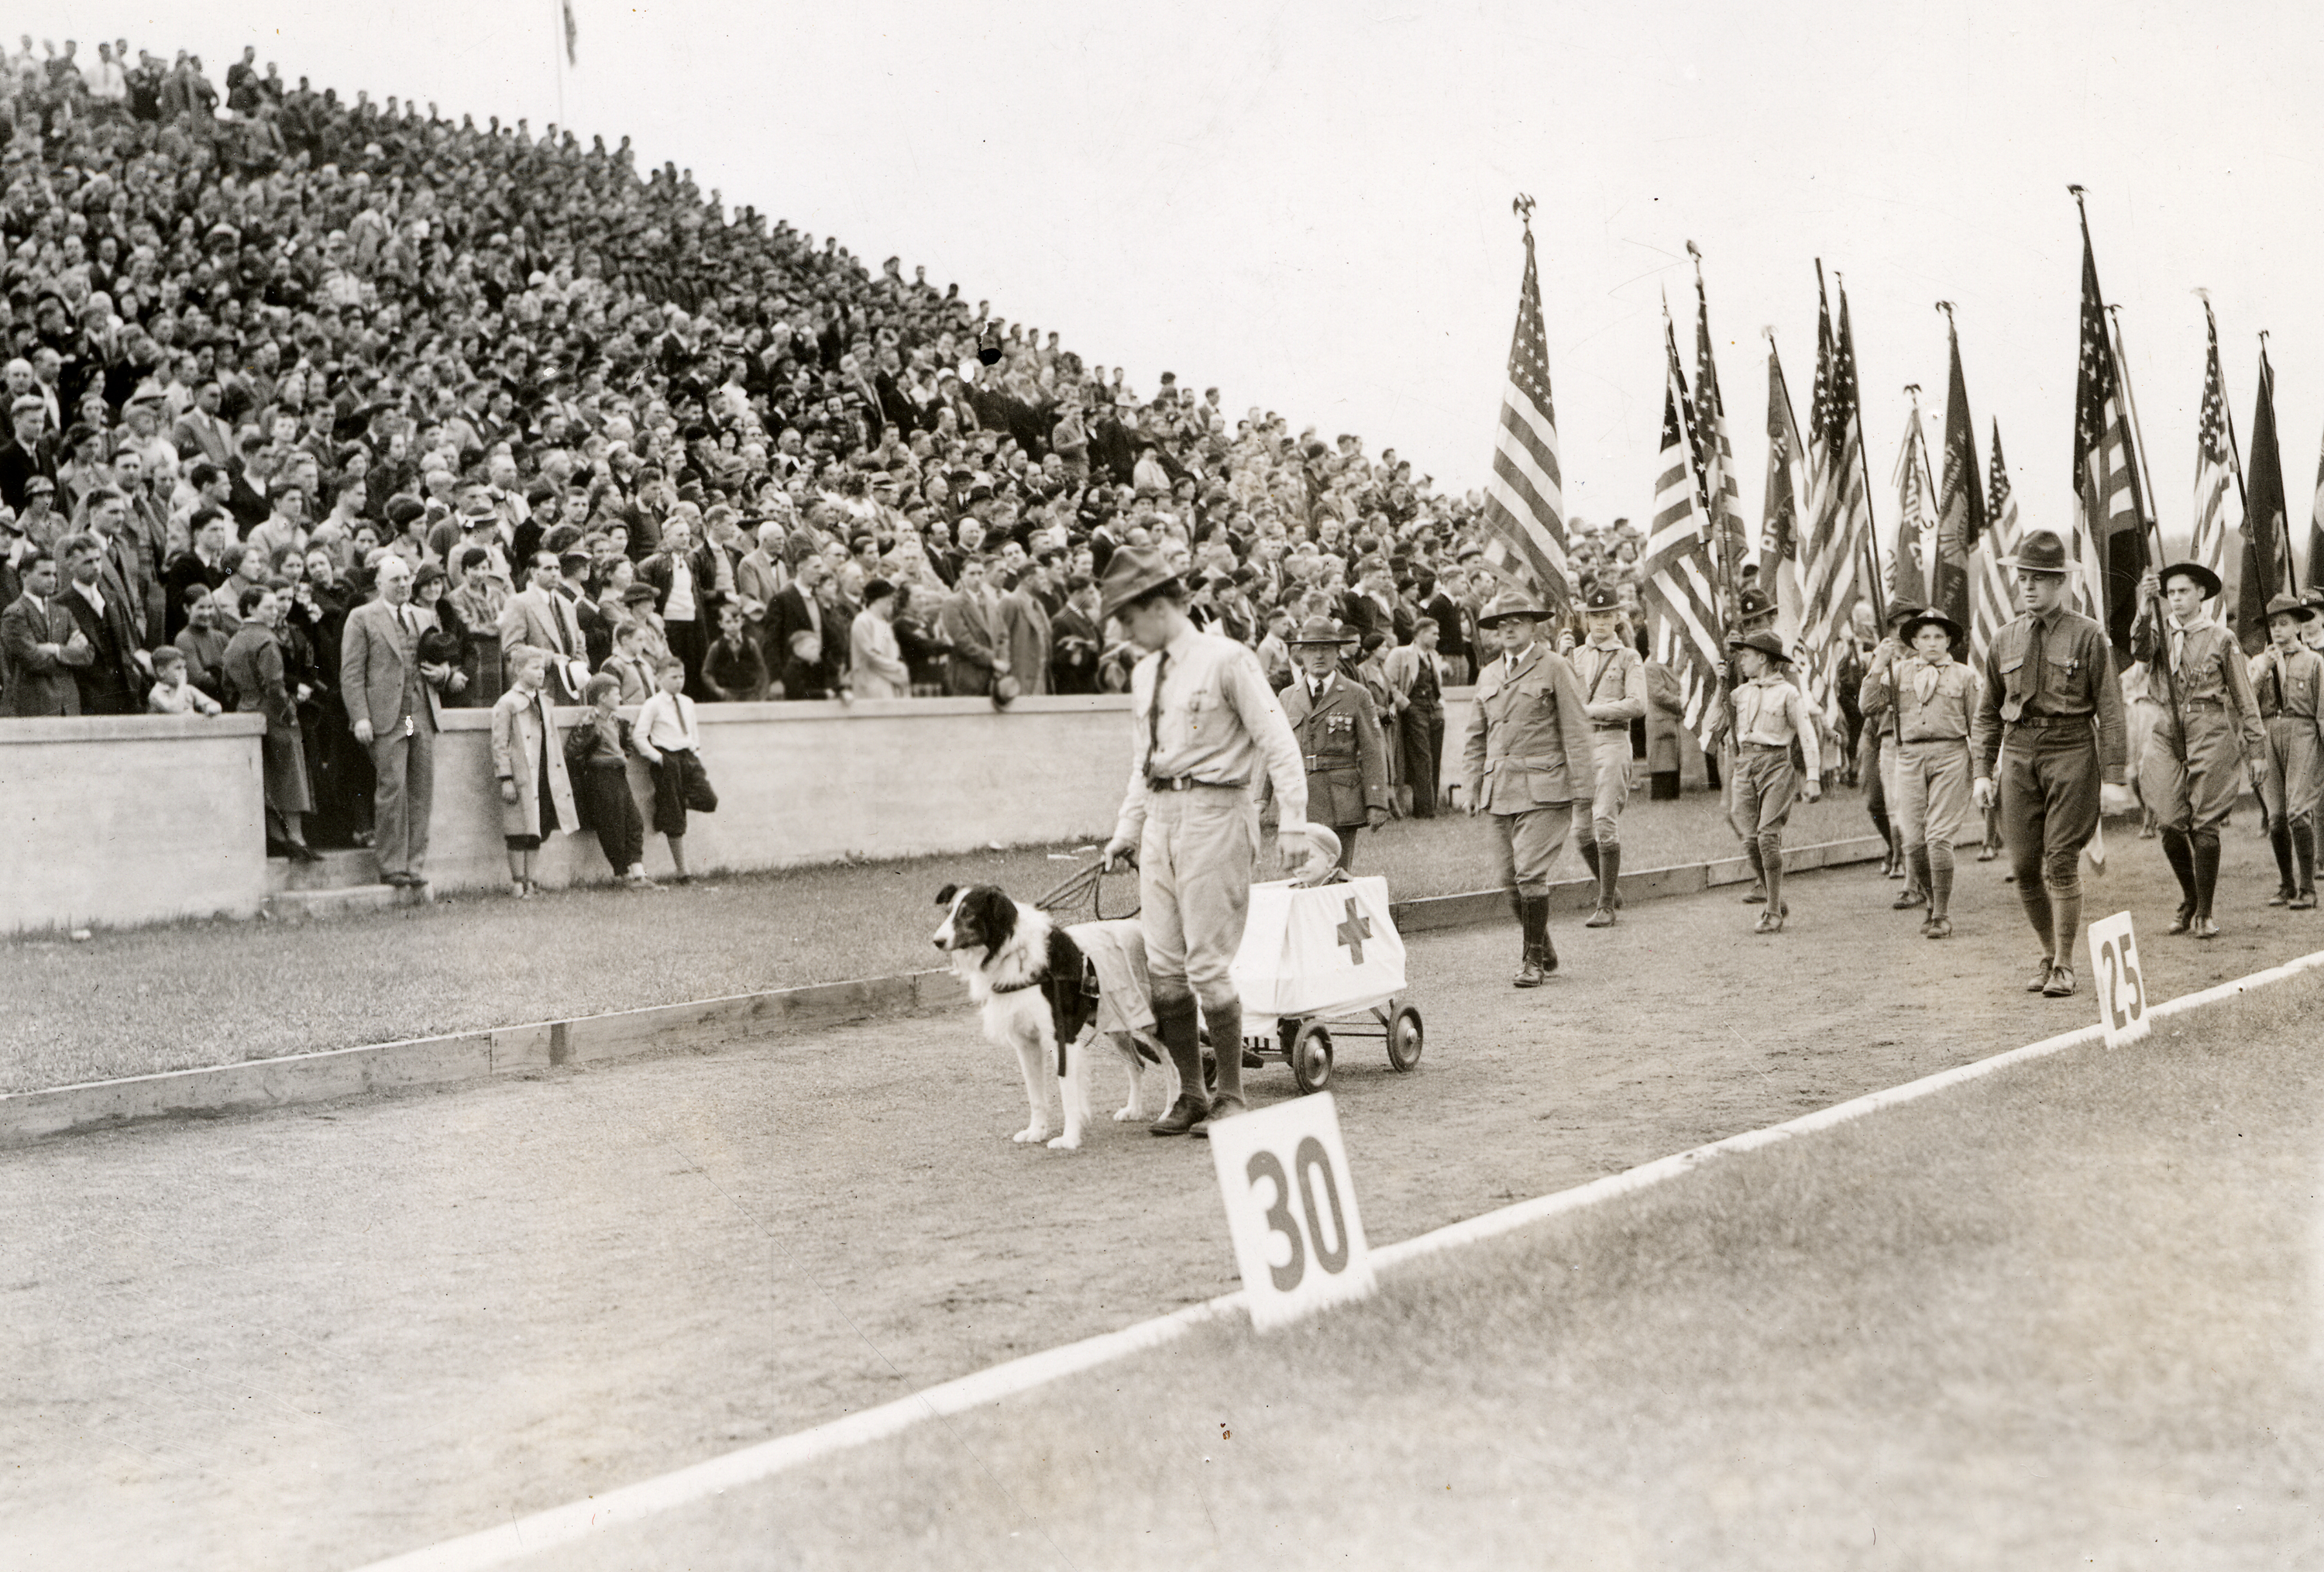 A dog marches with Boy Scouts during half-time, circa 1920s